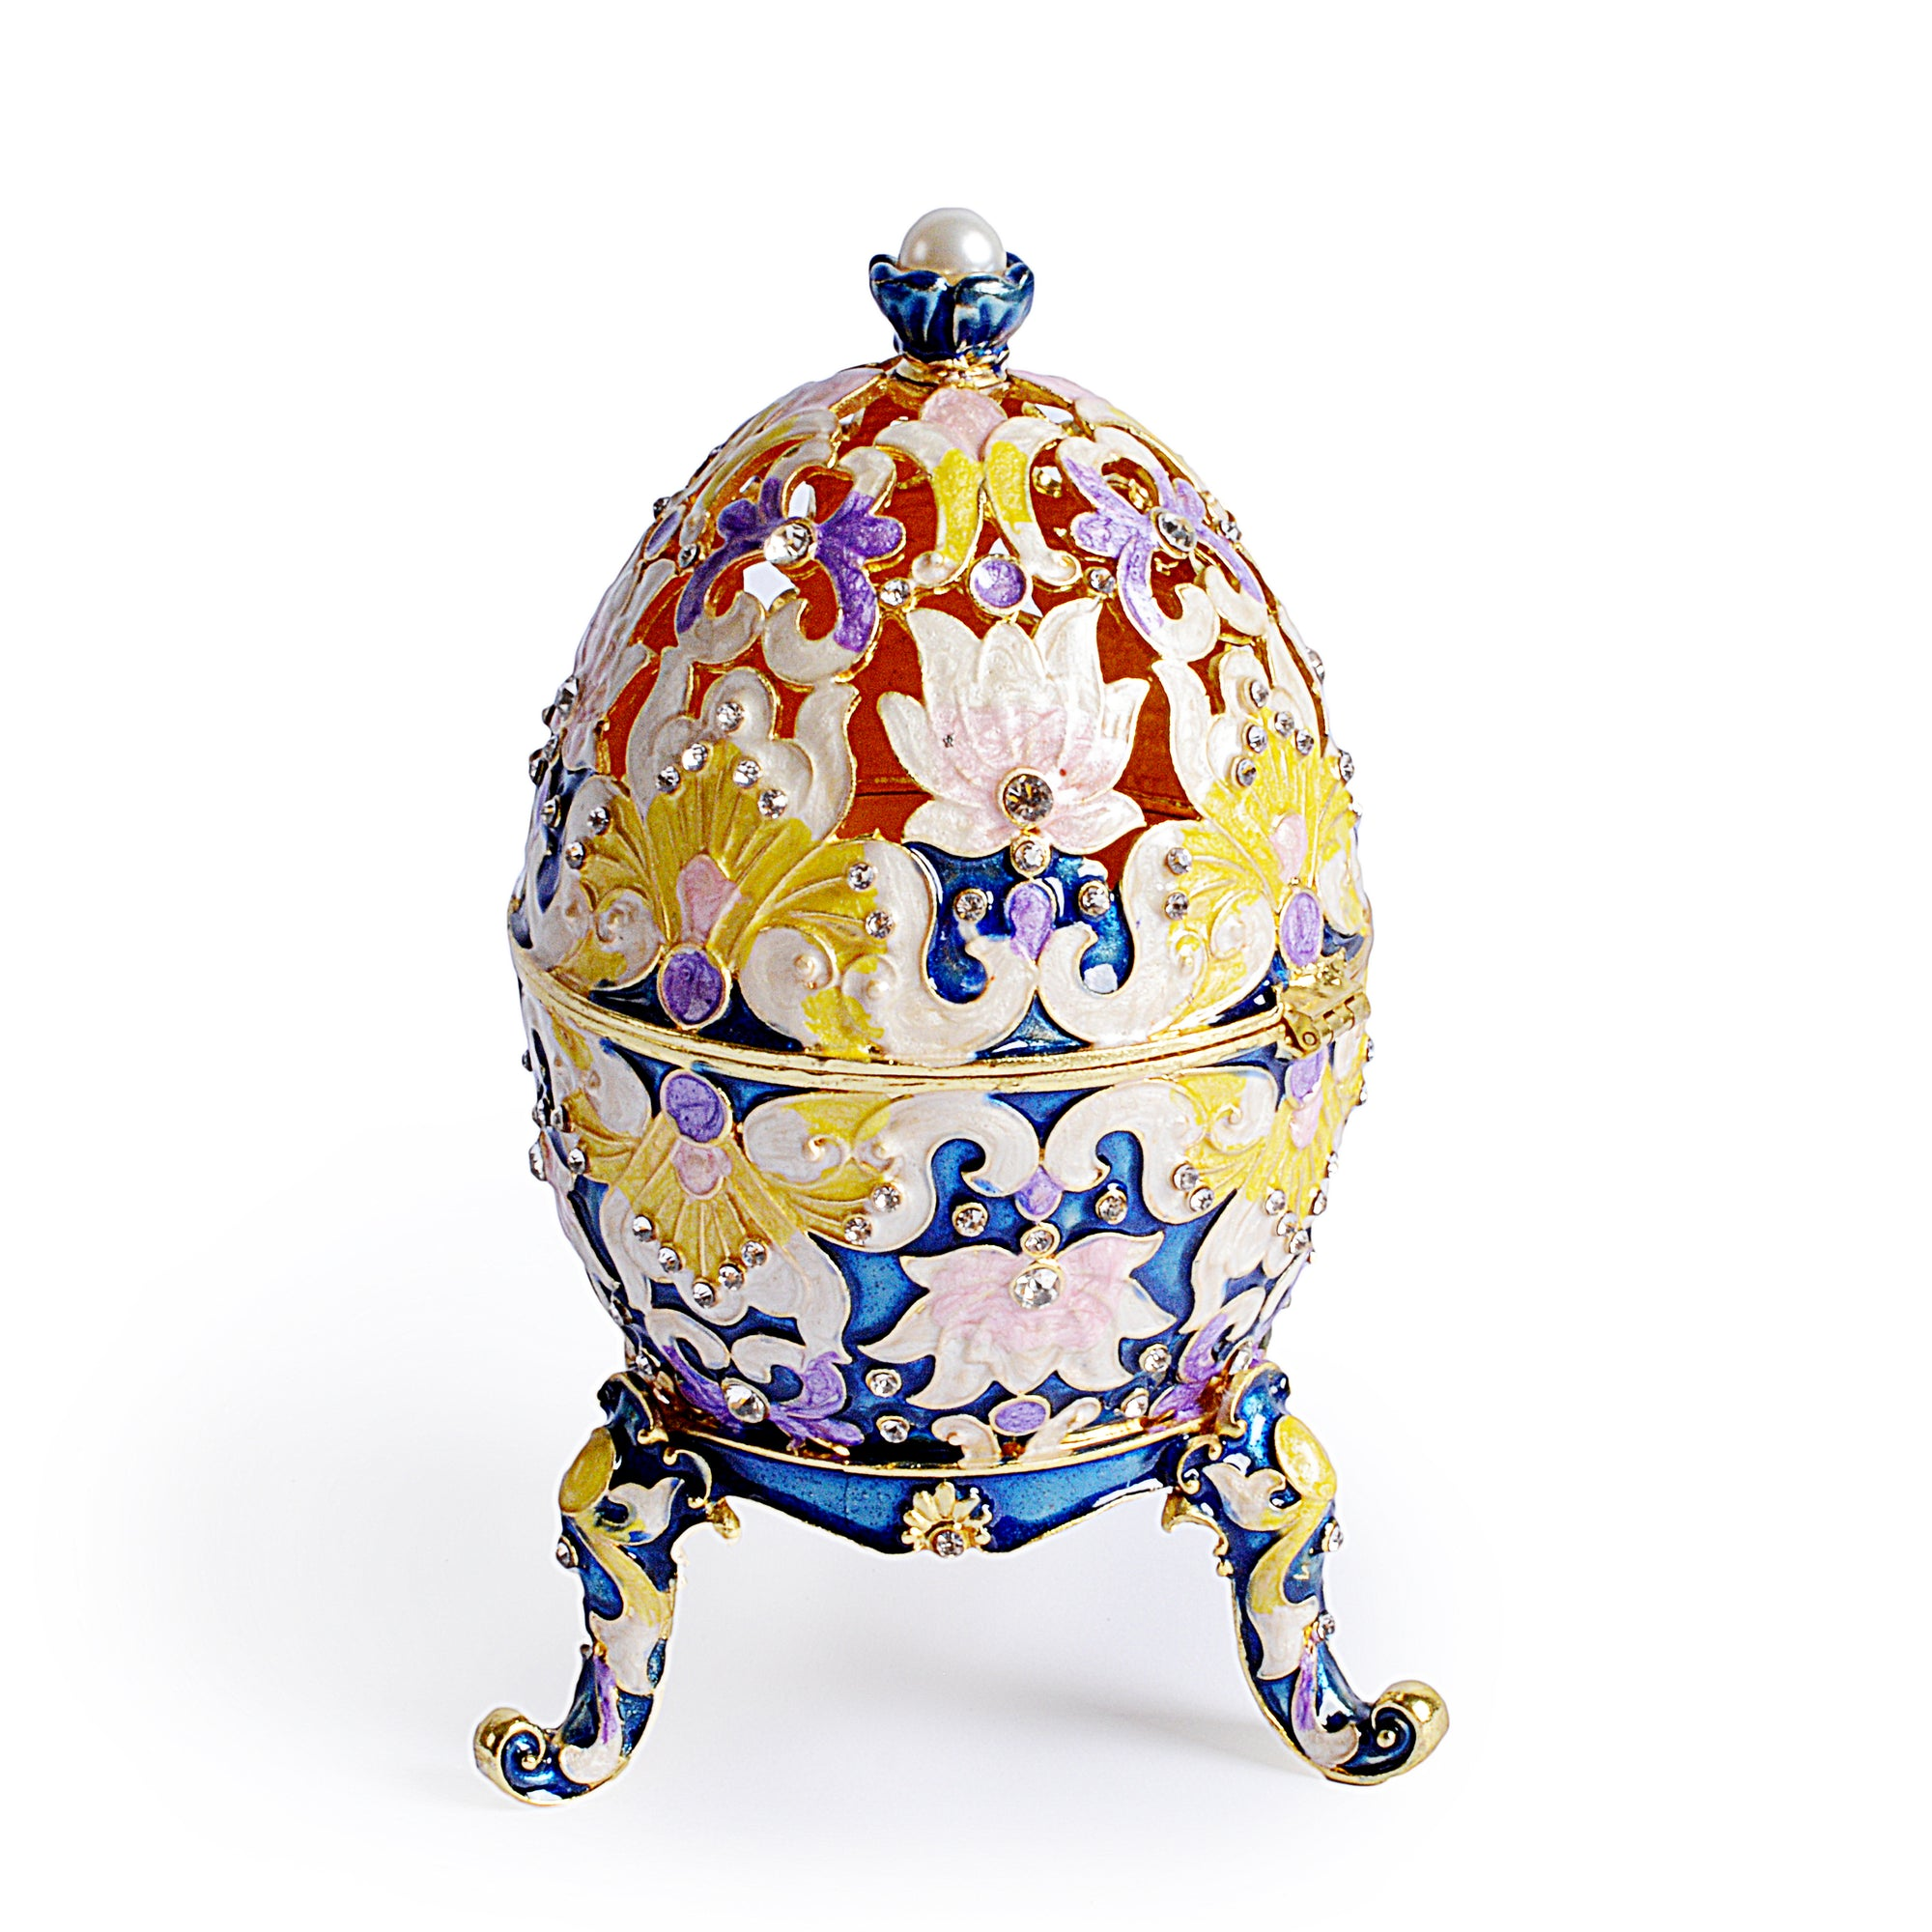 Decorative Traditional Design Egg Shape Jewelry Box